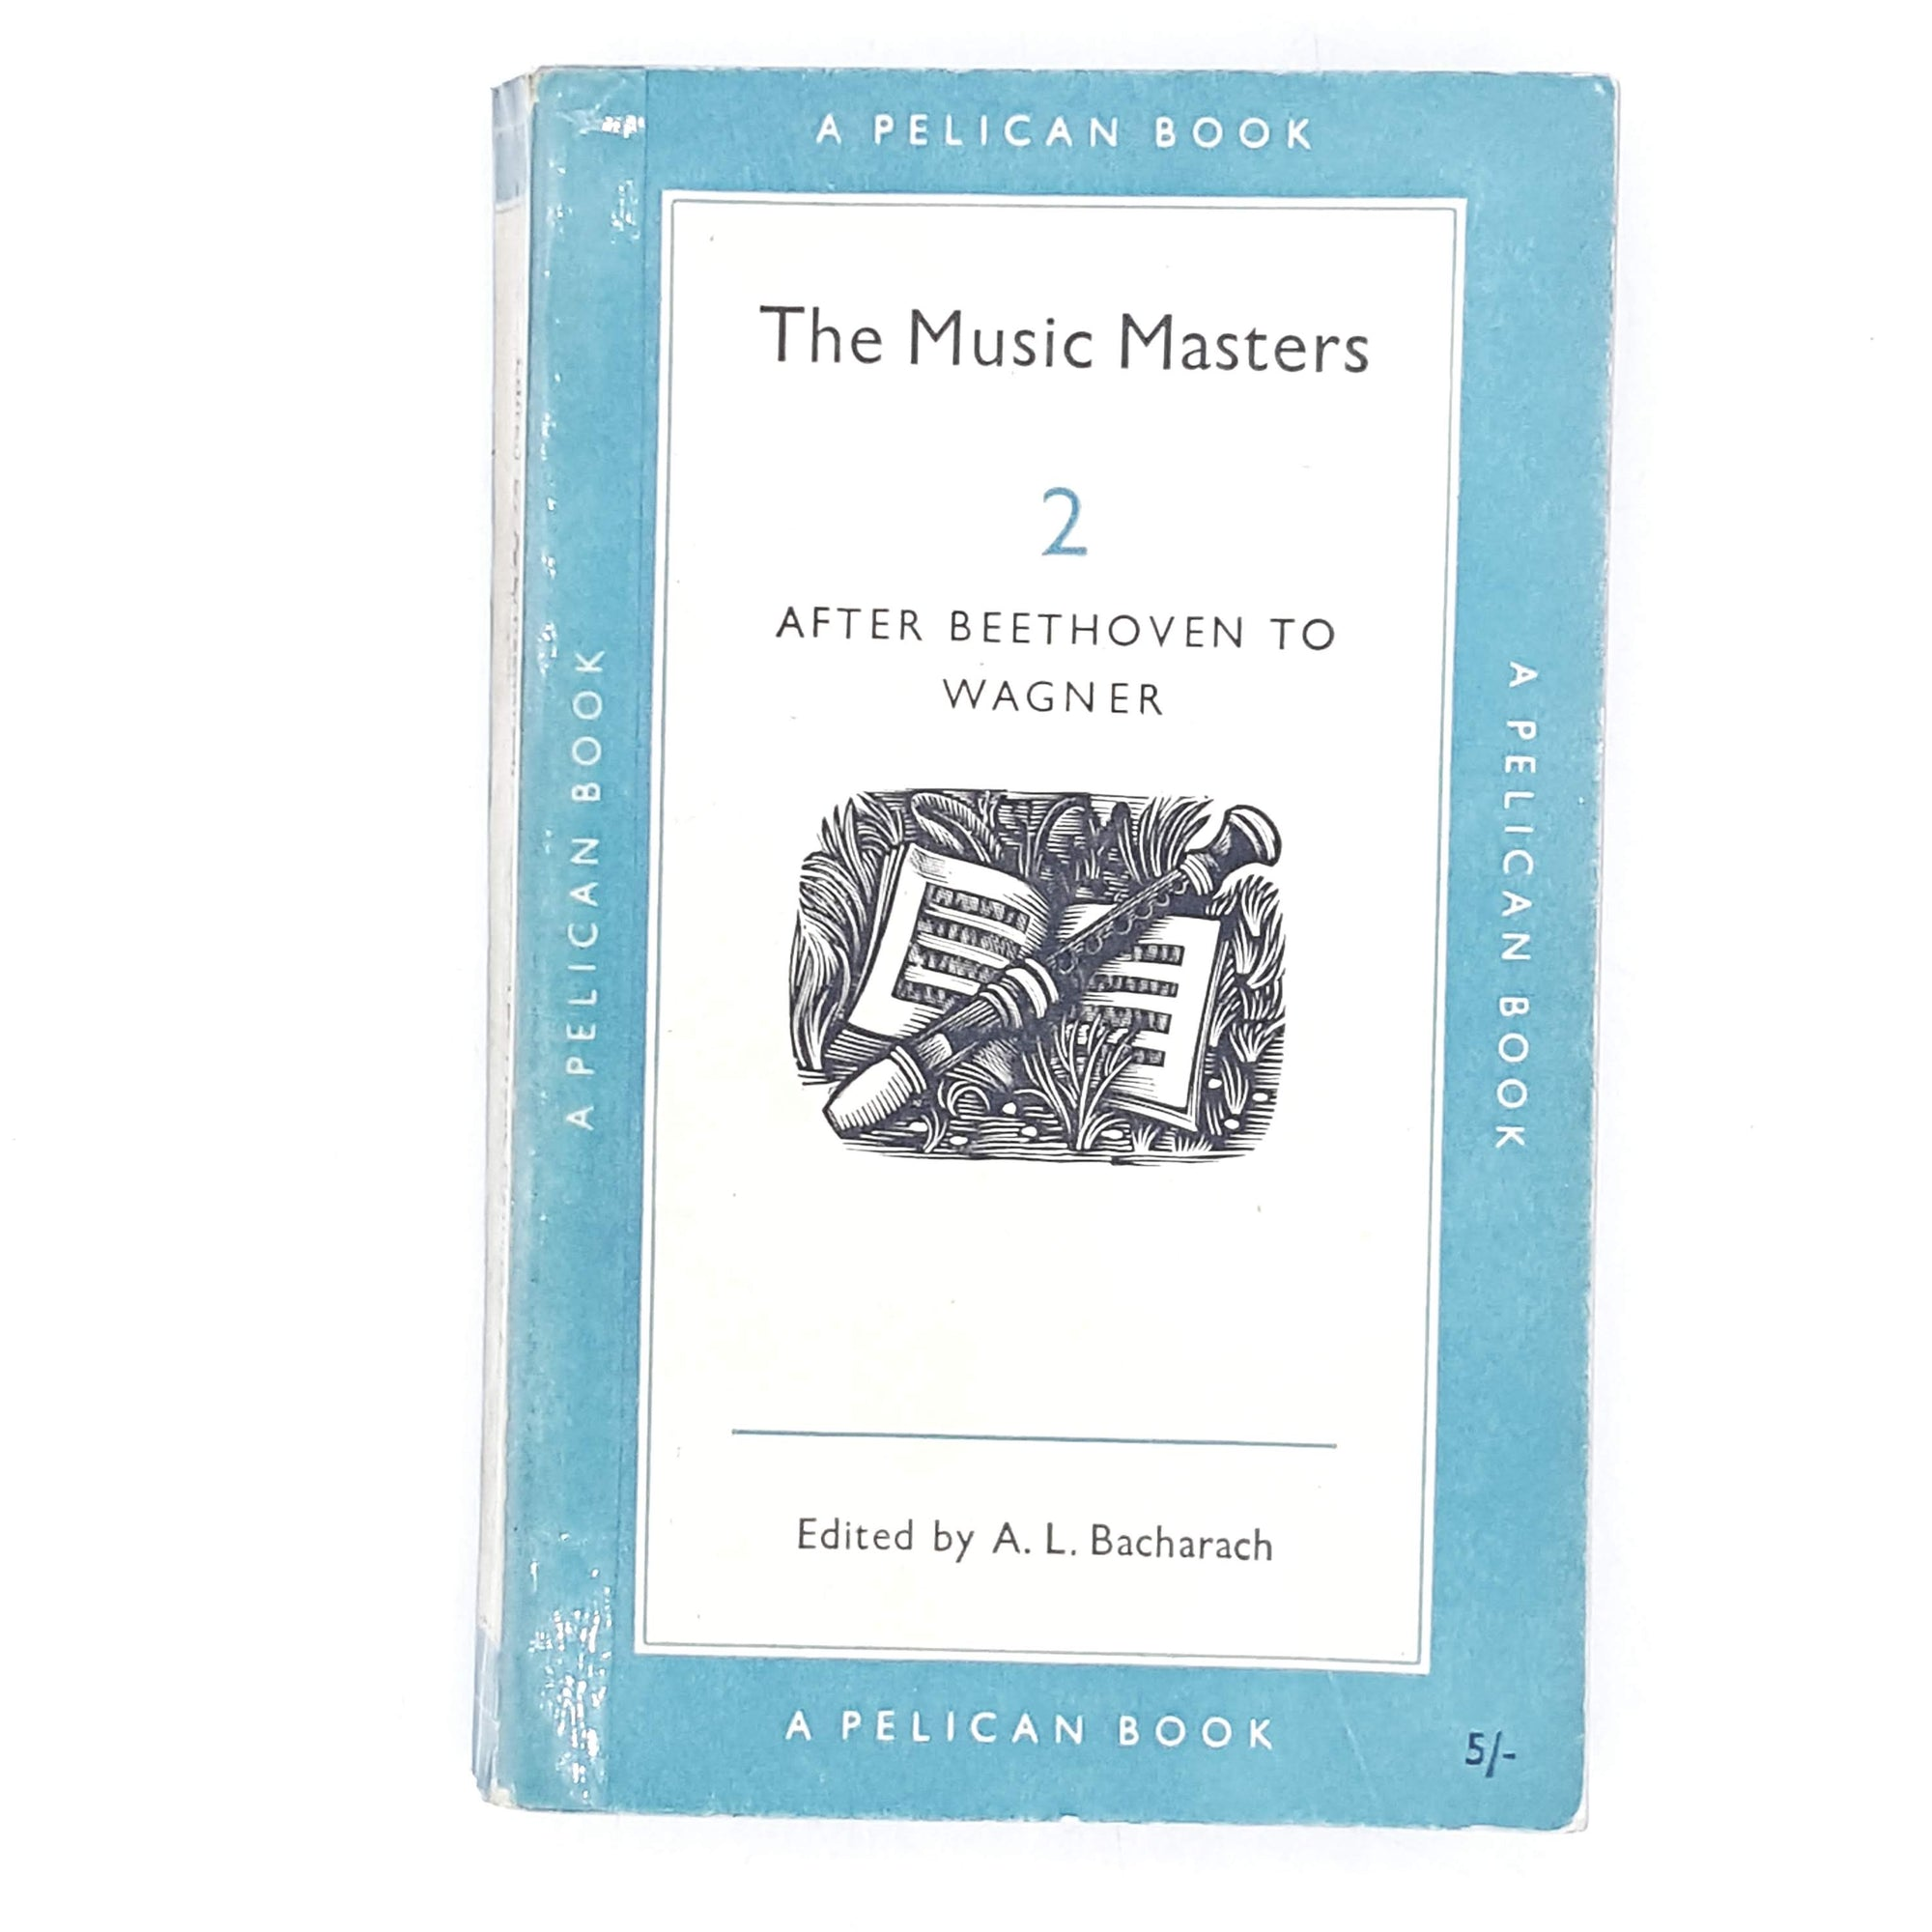 The Music Masters 2 by A. L. Bacharach 1958